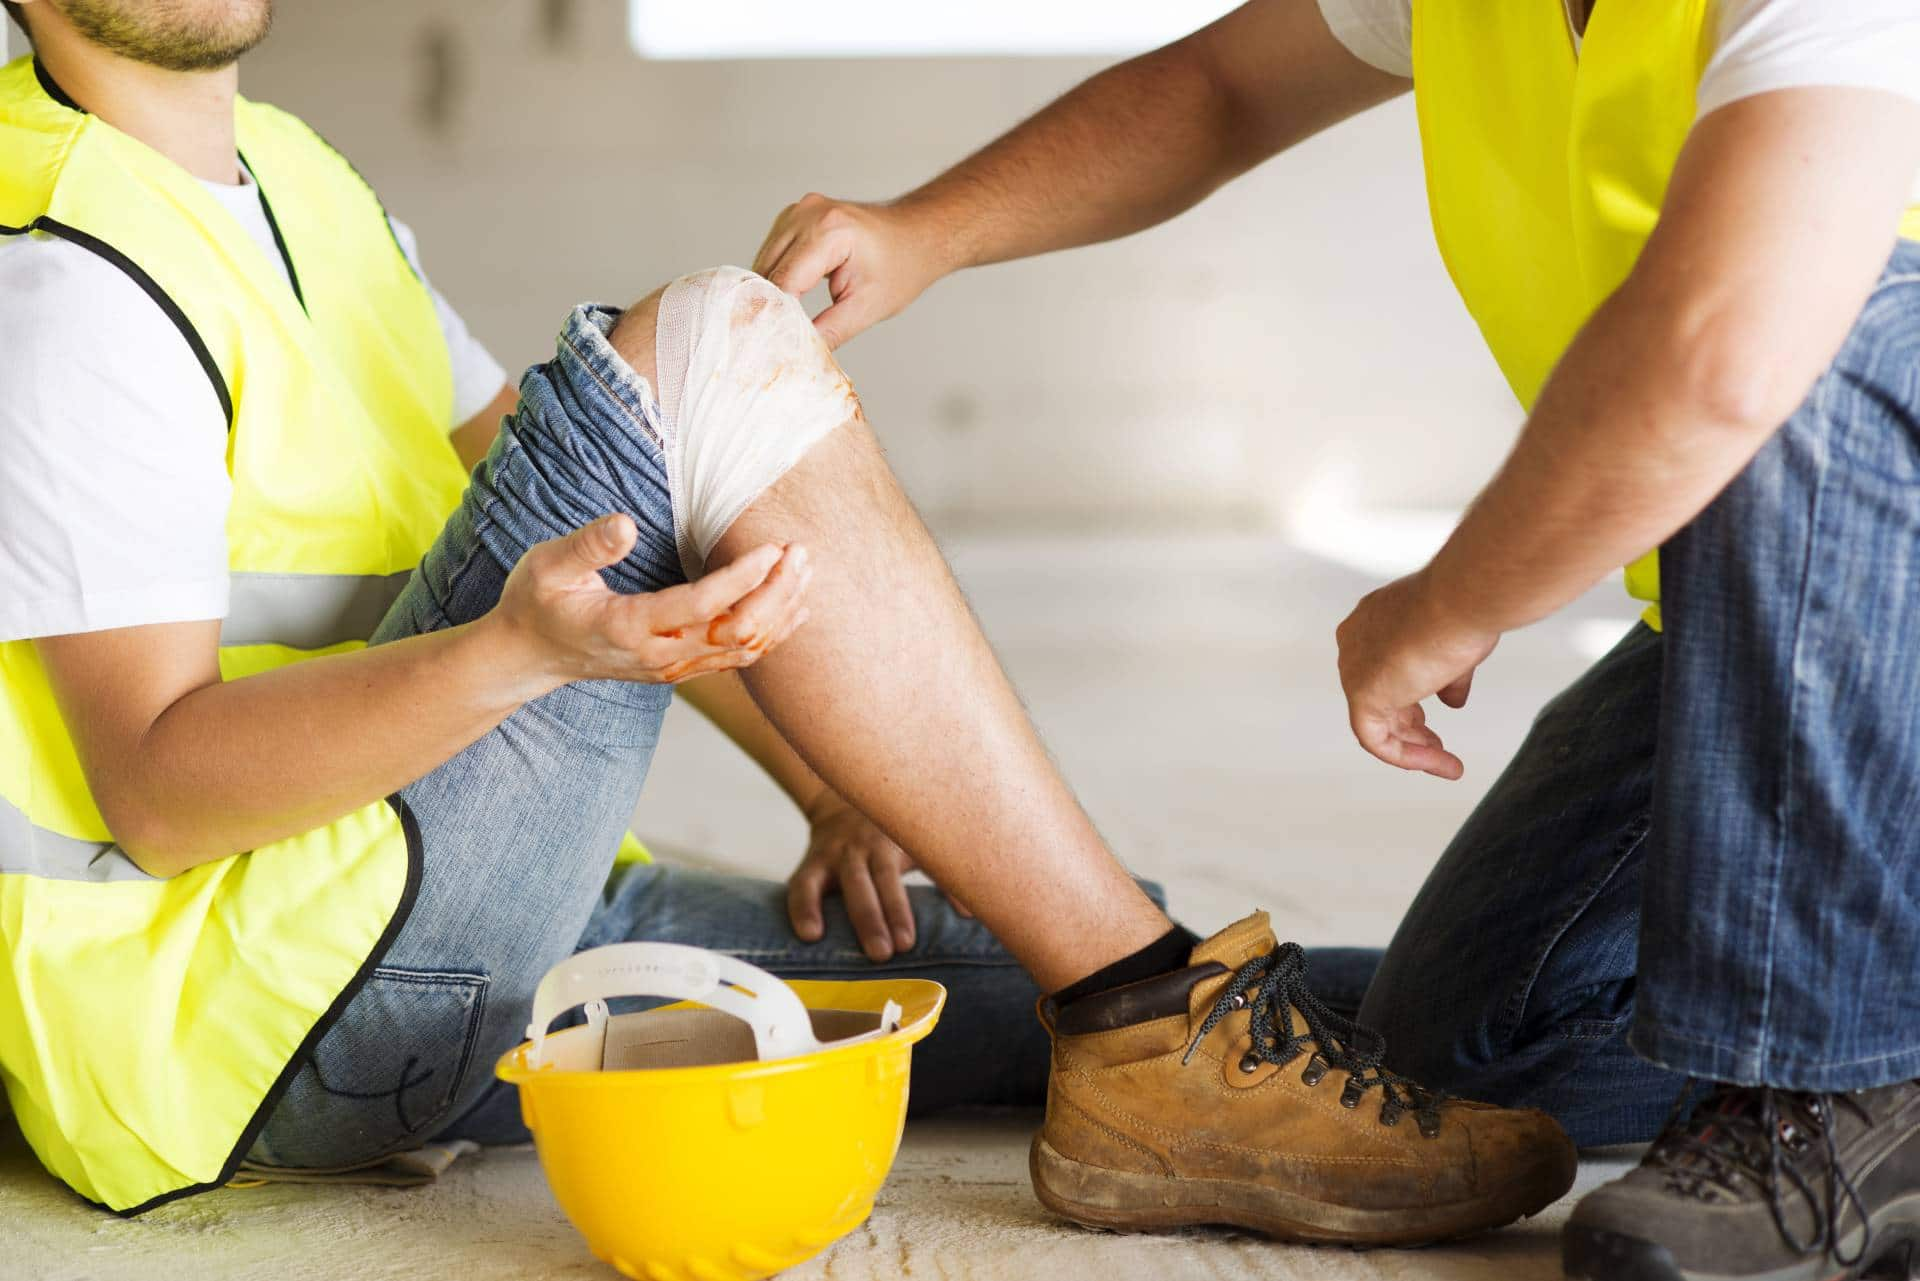 Hurt on the job? Schedule a free consultation with our personal injury lawyers at the Angell Law Firm in Buckhead, Ga